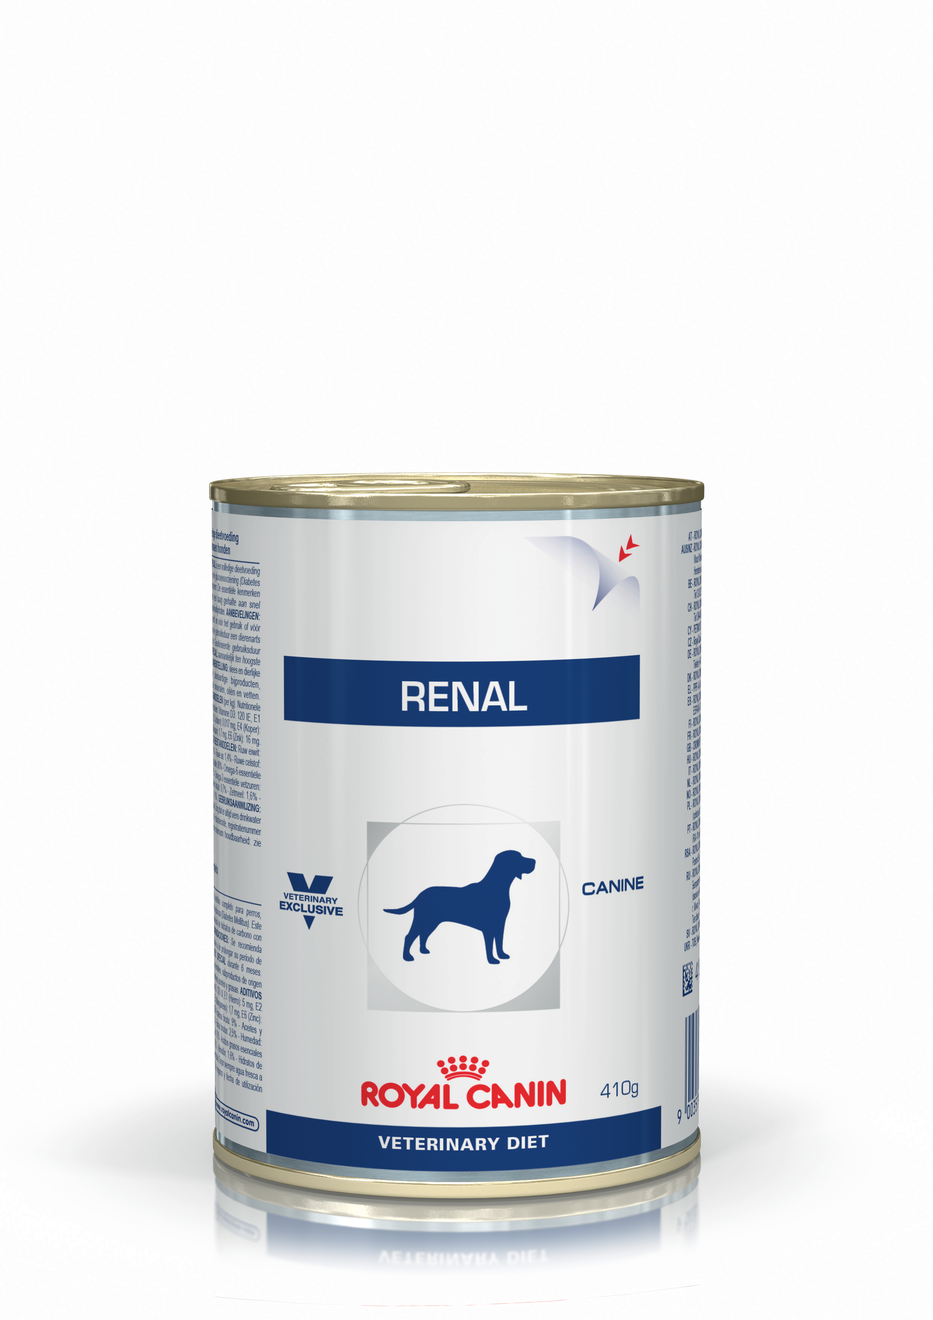 Royal Canin Renal for Dogs